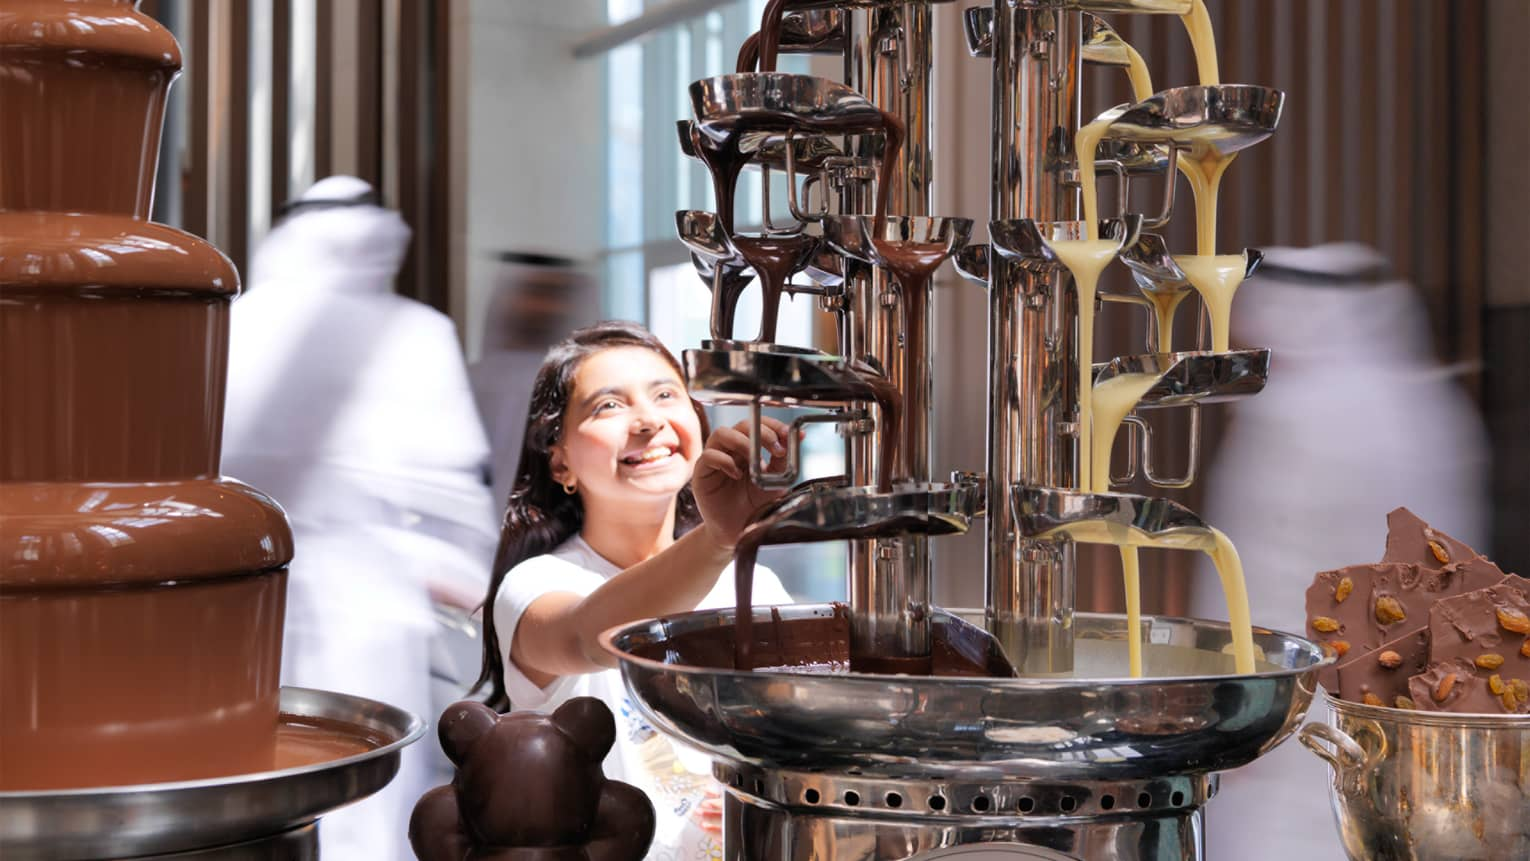 Smiling young girl reaches up tabletop fountain as melted chocolate cascades down